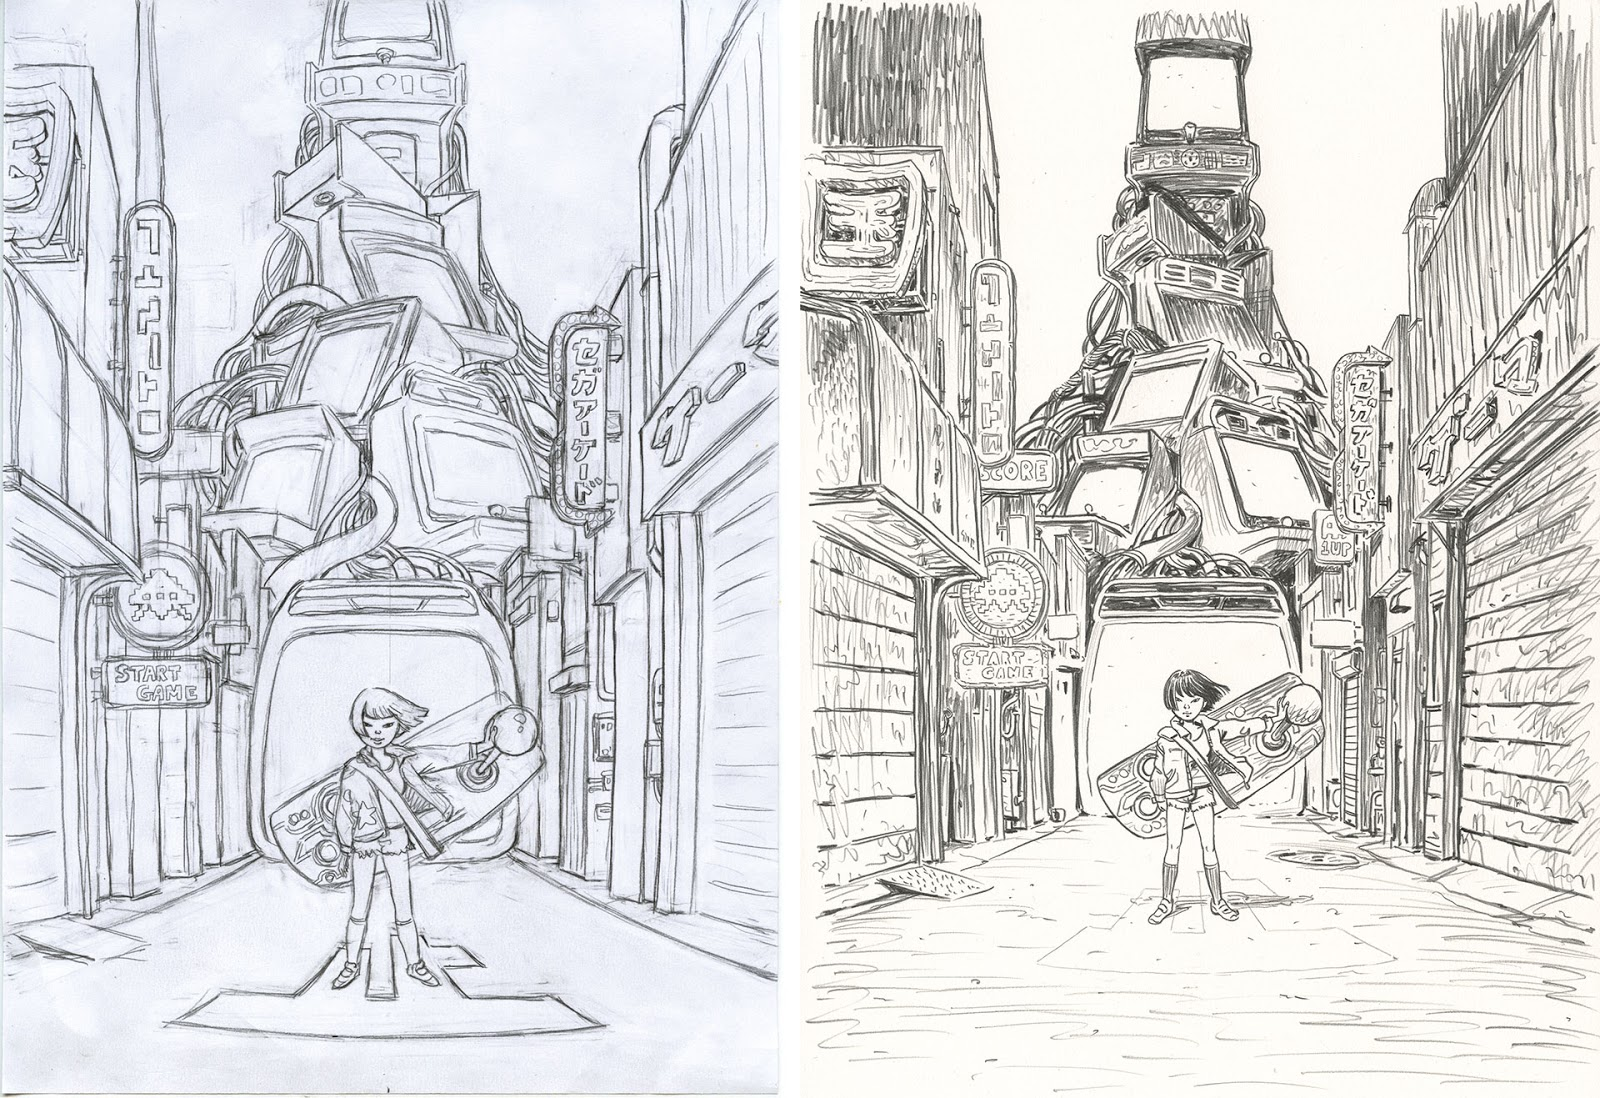 pencils of the illustration